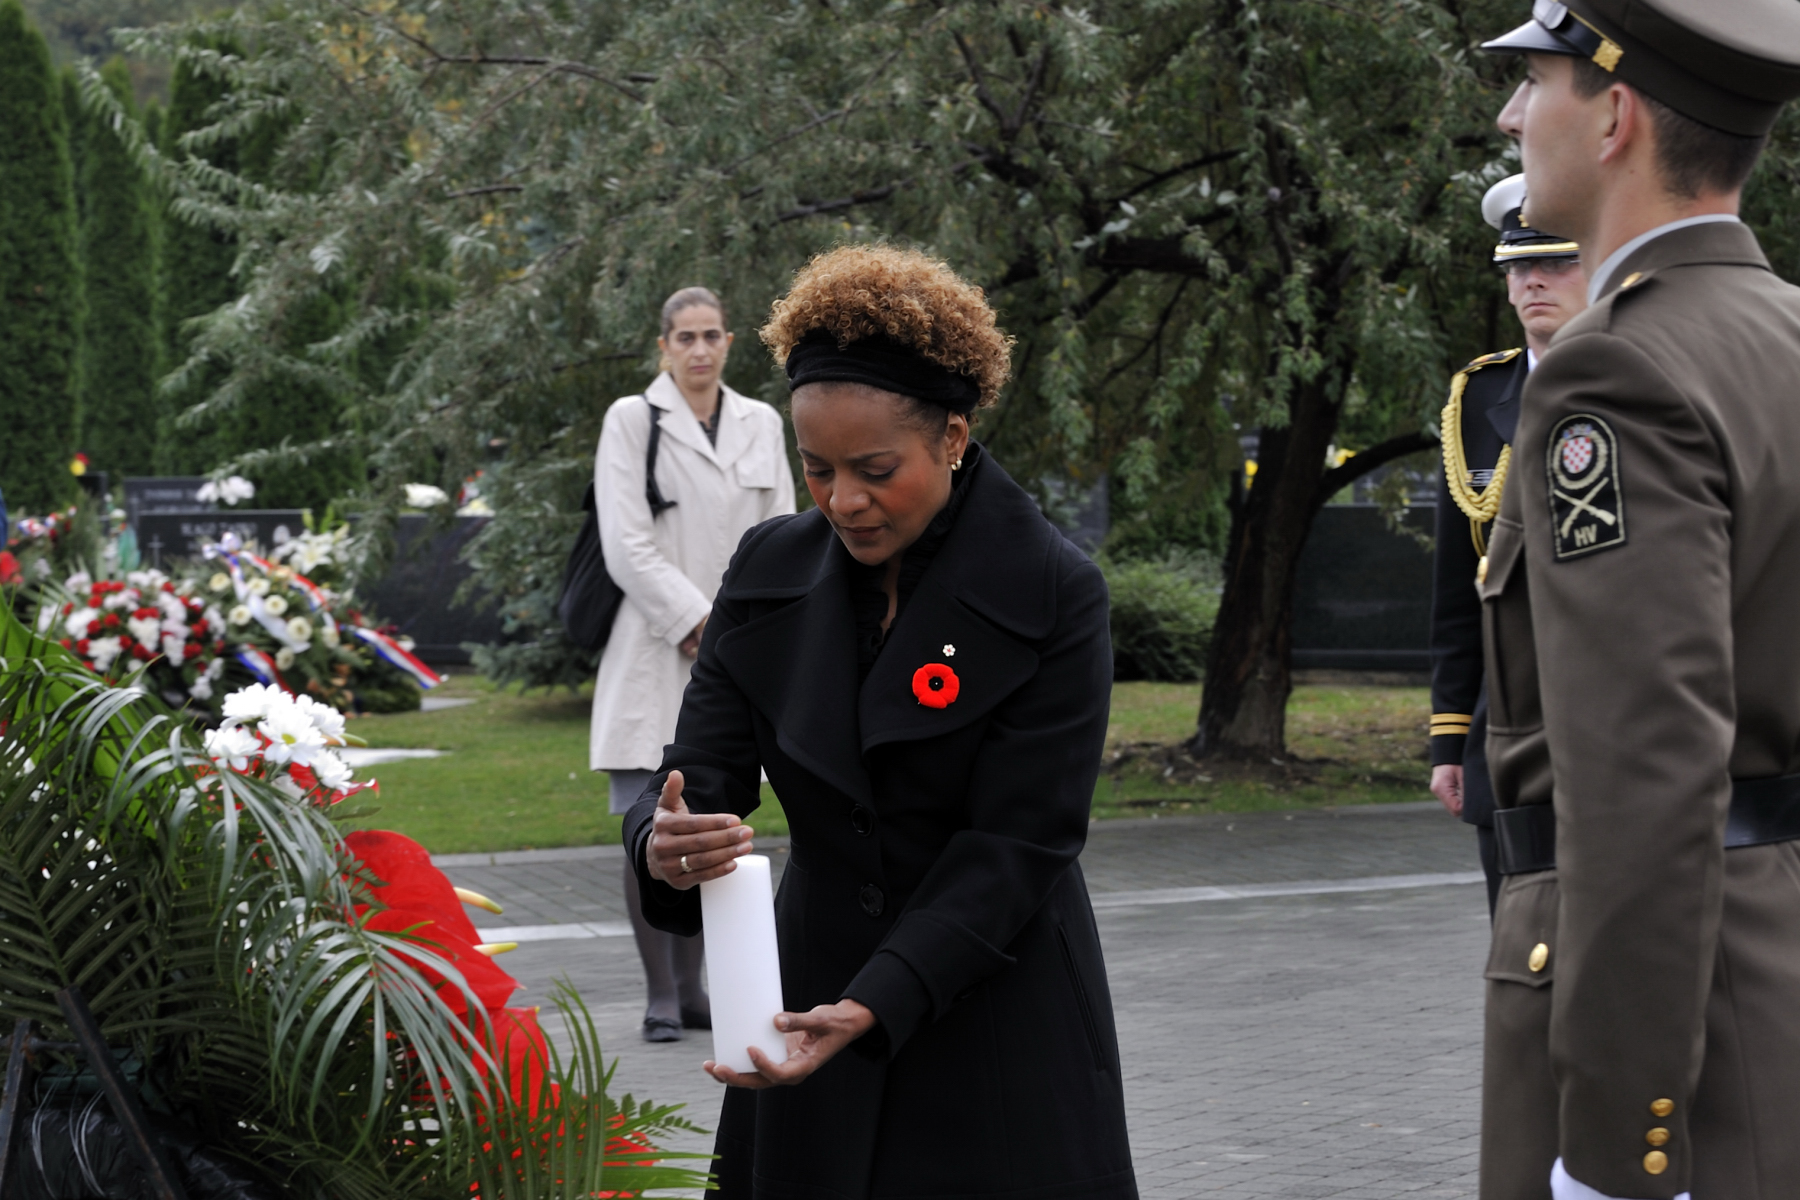 Her Excellency laid a wreath at the War Memorial Centre.